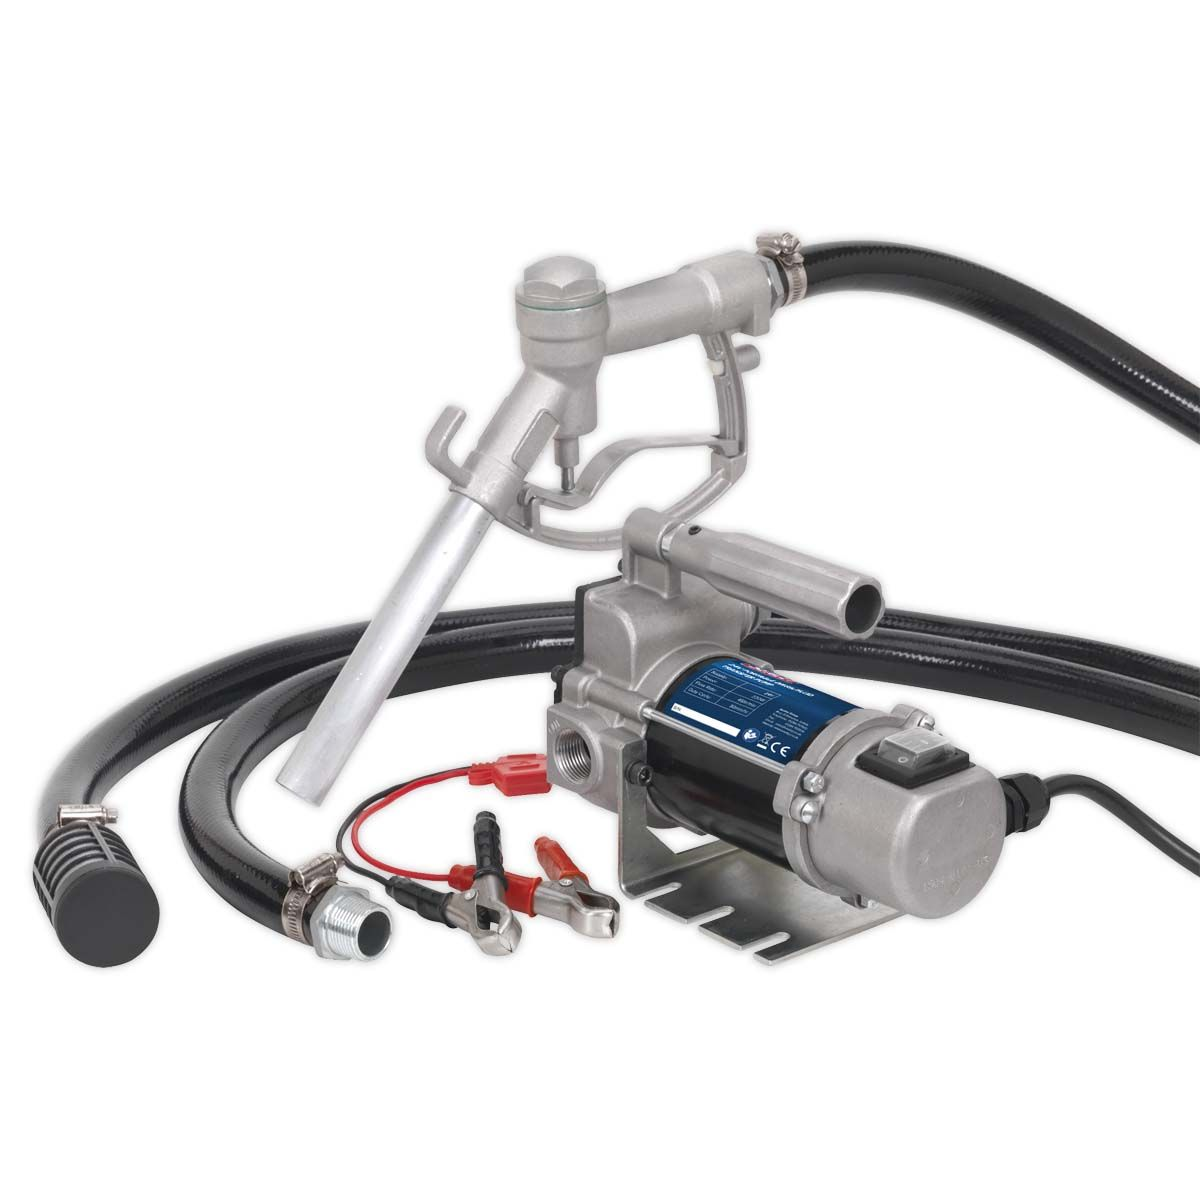 Sealey Diesel/Fluid Transfer Pump Portable 24V